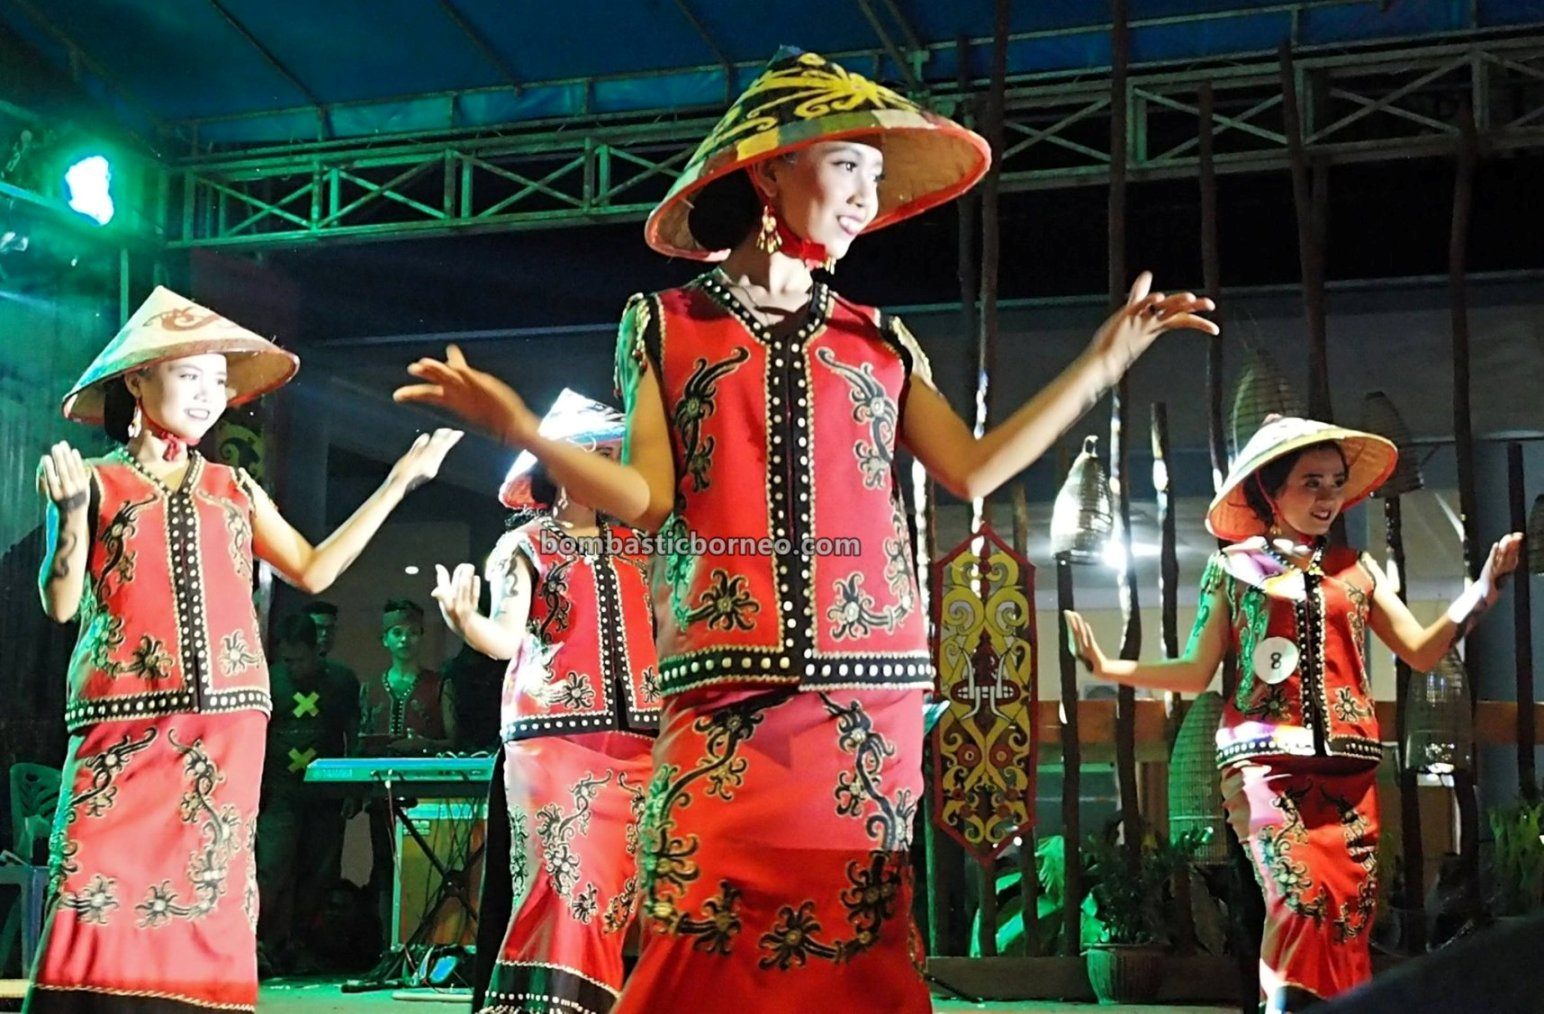 paddy harvest festival, Stadion Baning, indigenous, backpackers, cultural dance, event, Borneo, West Kalimantan, native, tribe, tribal, Obyek wisata, trans Border, 婆羅洲达雅克丰收节, 印尼西加里曼丹,